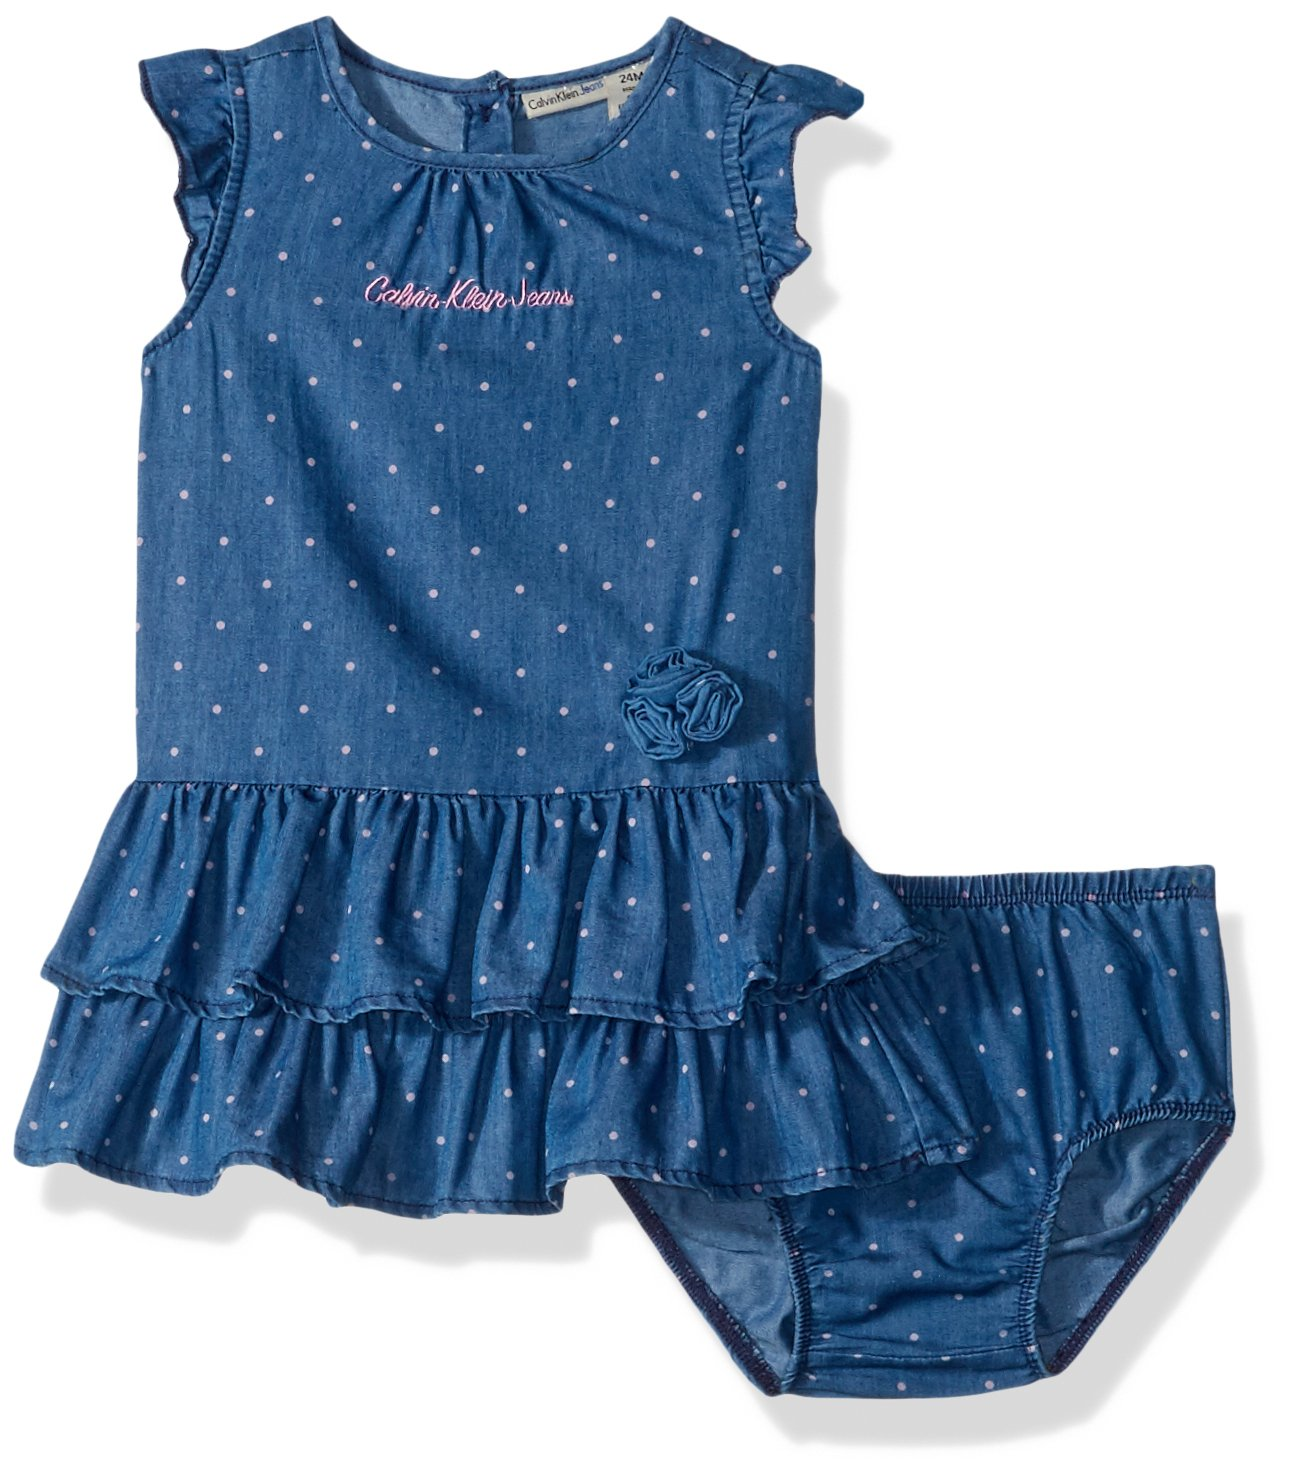 Calvin Klein Baby Girls Dress with Panty Set, Light